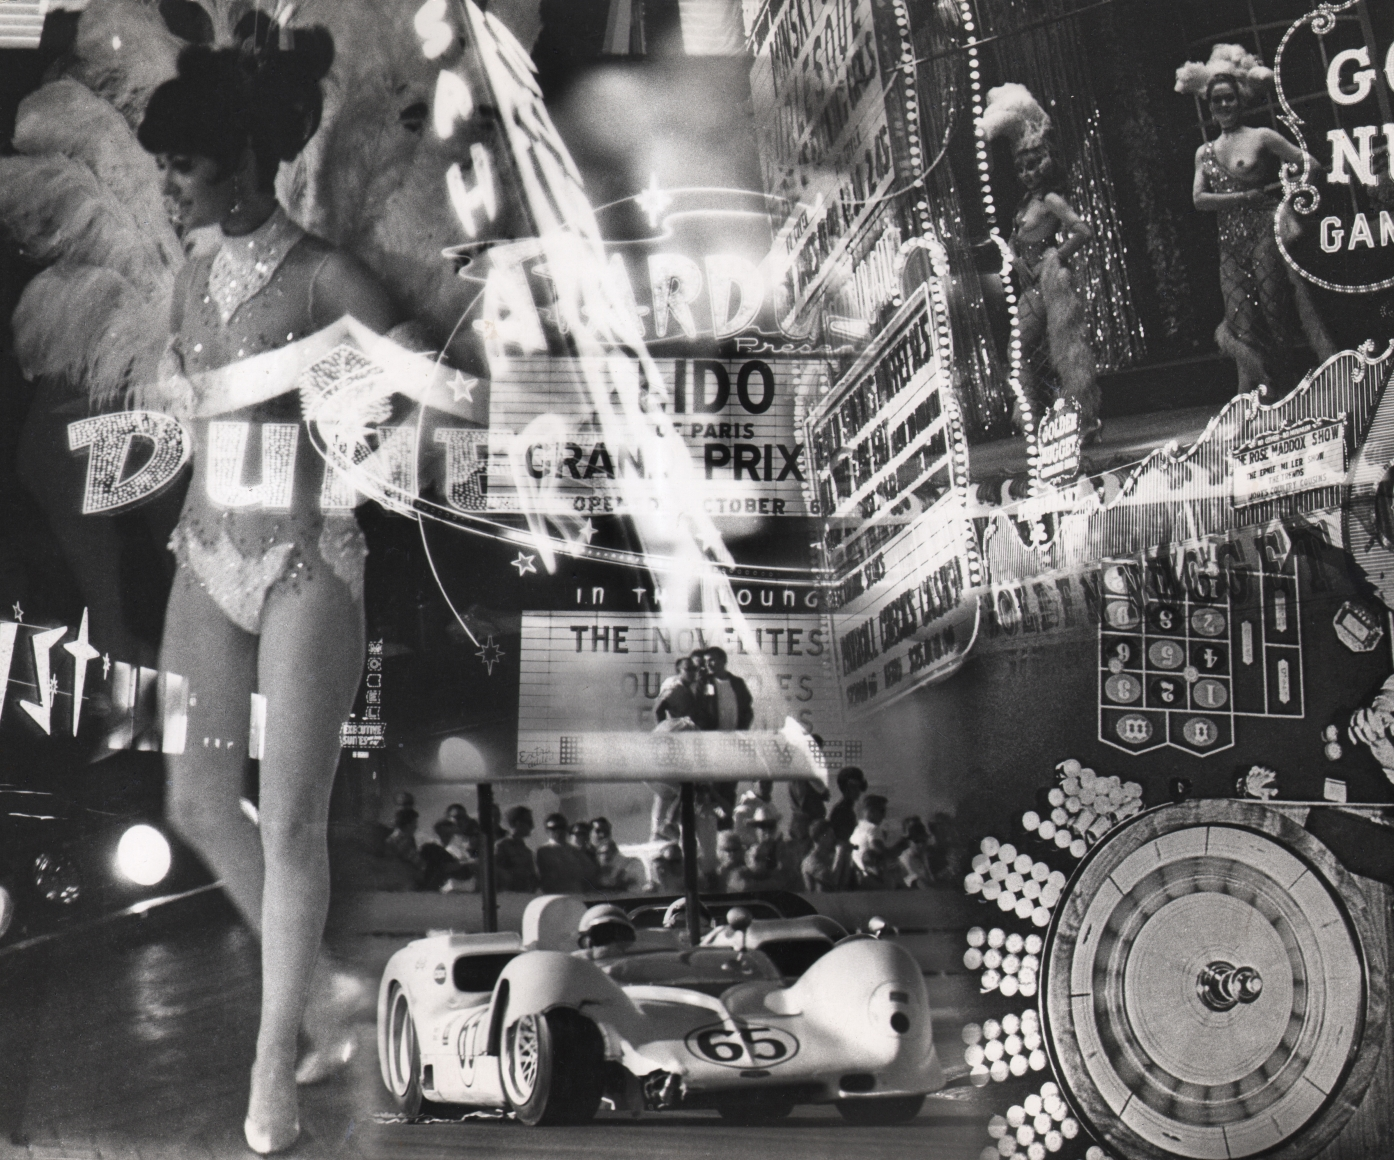 13. David Attie, Car & Driver, Las Vegas, 1967. Composite photo featuring showgirls, marquees, a roulette table, and a racecar.